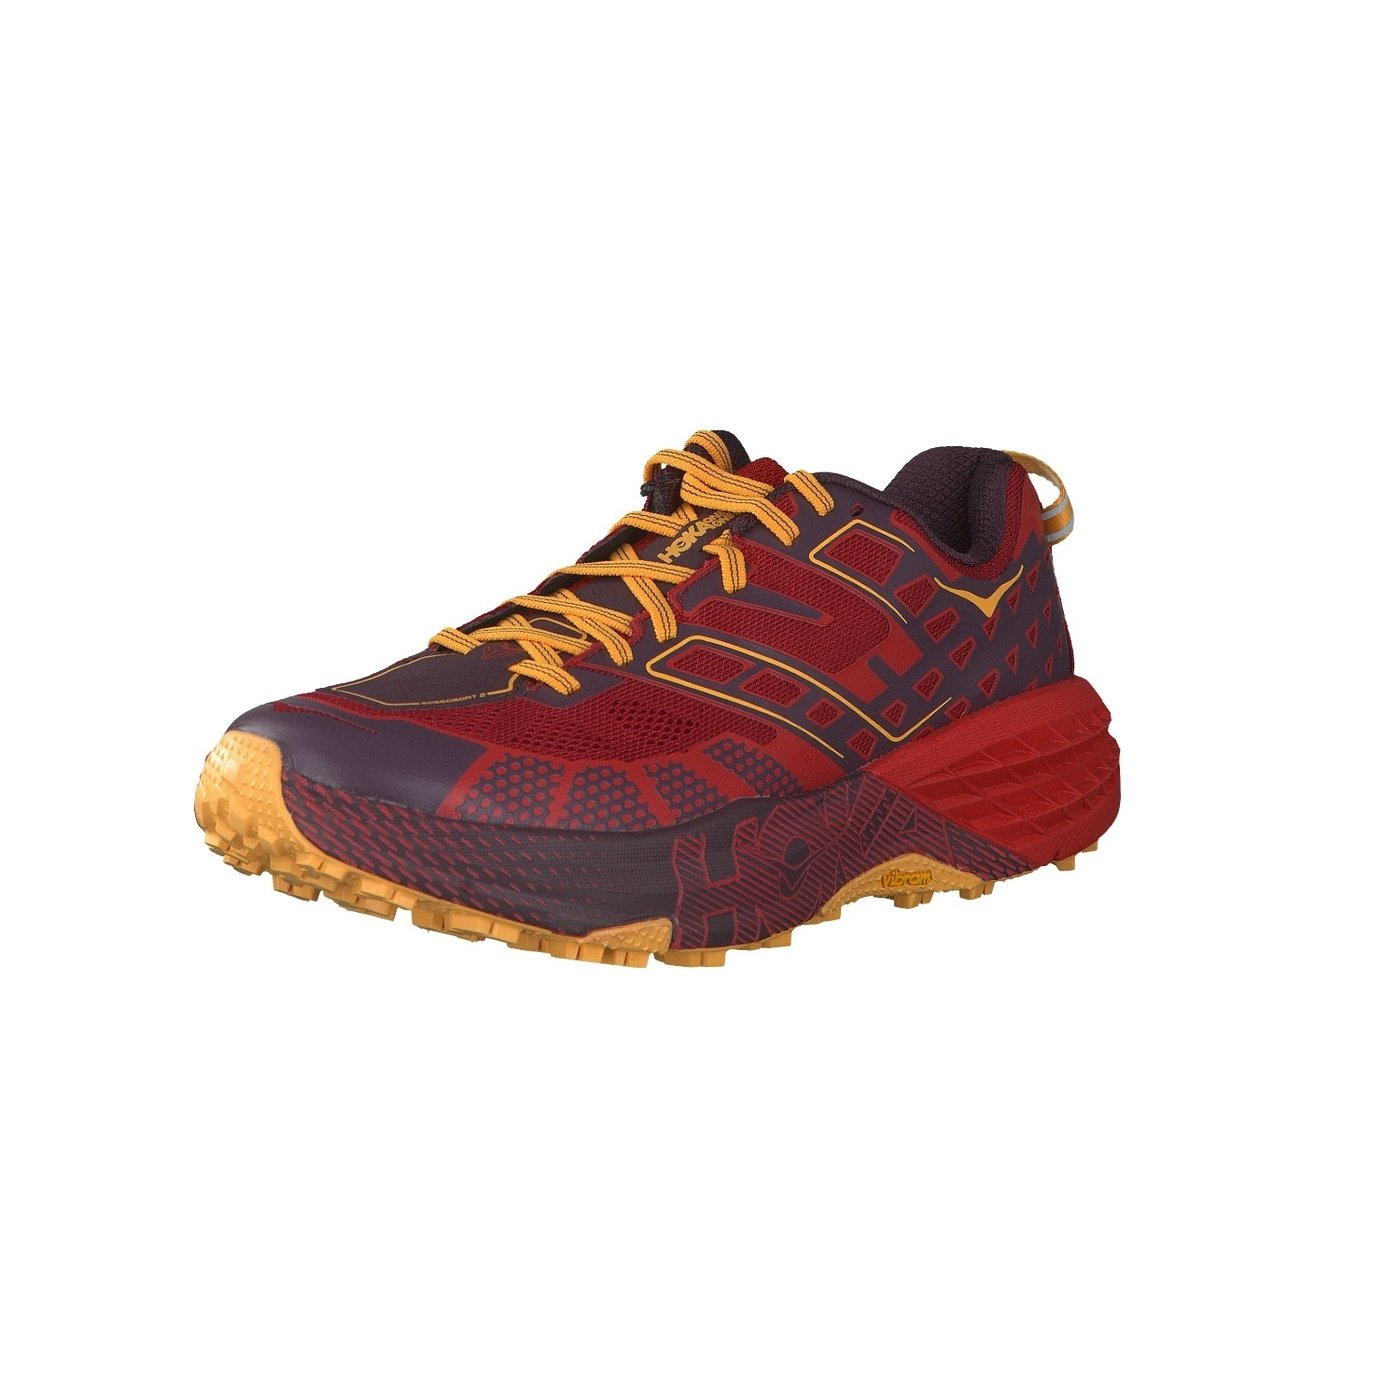 ZAPATILLAS HOKA ONE ONE M SPEEDGOAT 2: Amazon.es: Deportes y aire ...